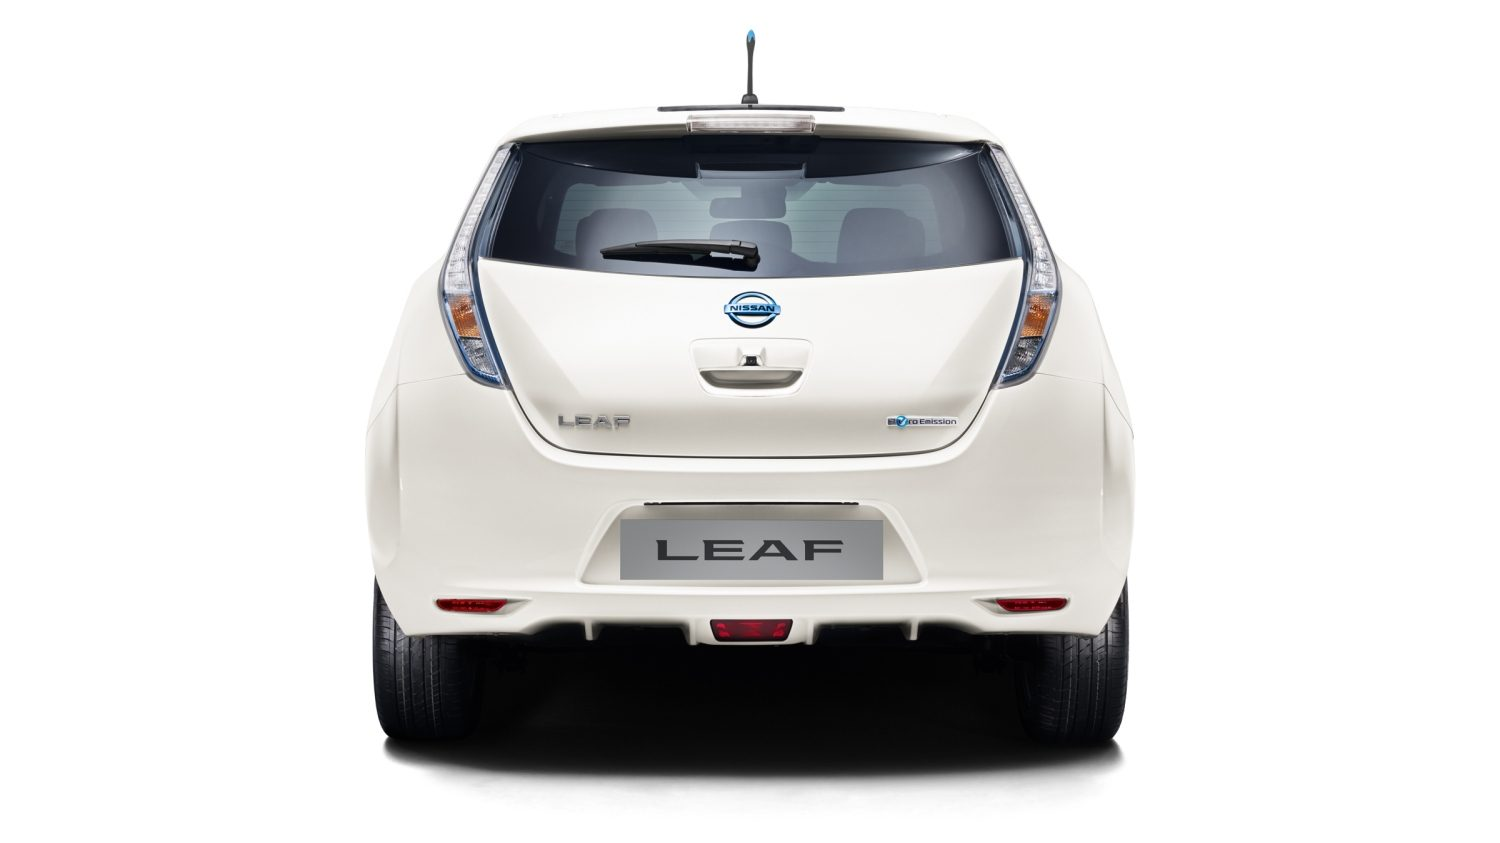 Nissan LEAF - Static rear view